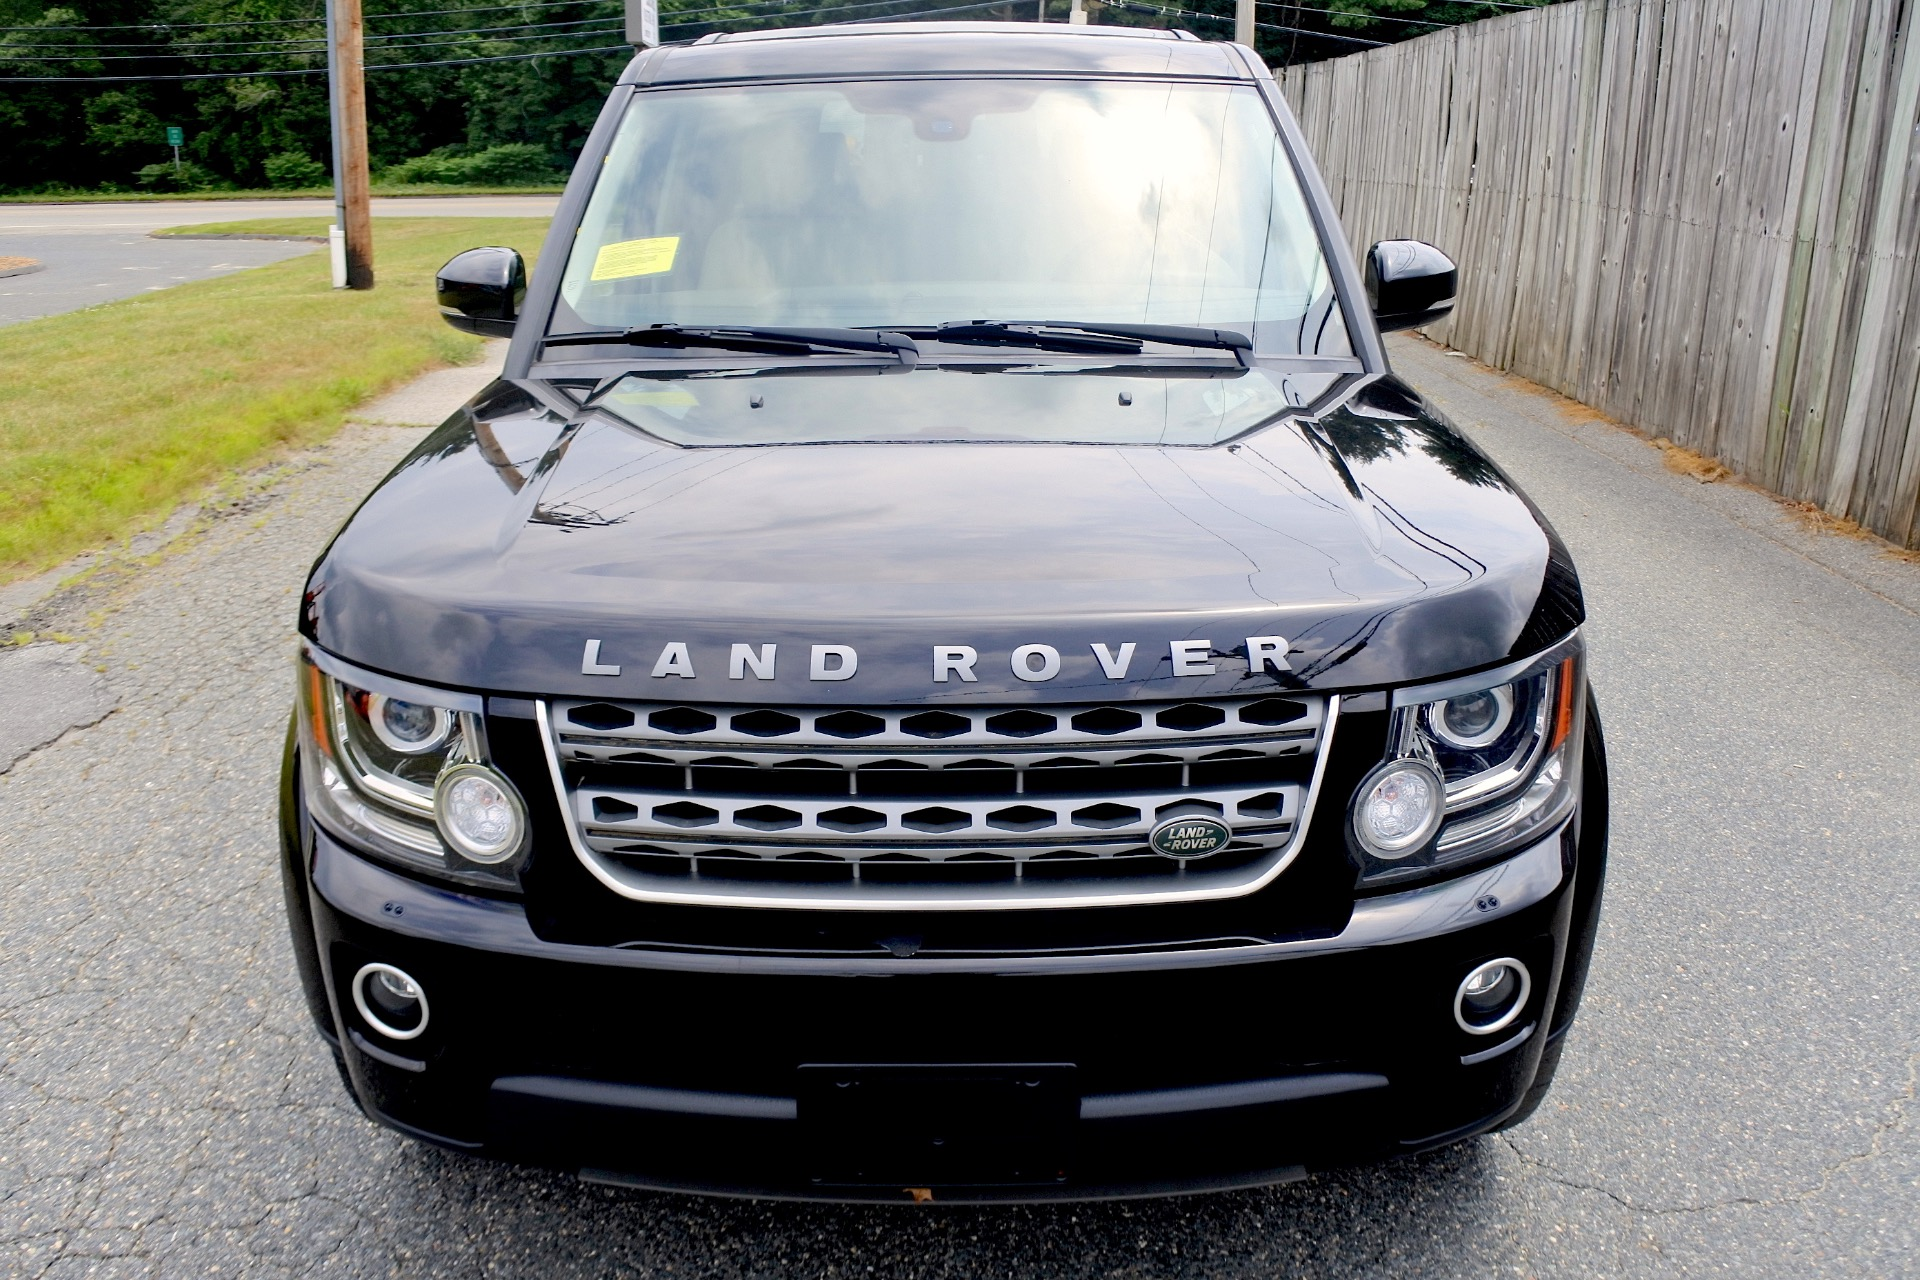 Used 2016 Land Rover Lr4 HSE Used 2016 Land Rover Lr4 HSE for sale  at Metro West Motorcars LLC in Shrewsbury MA 8